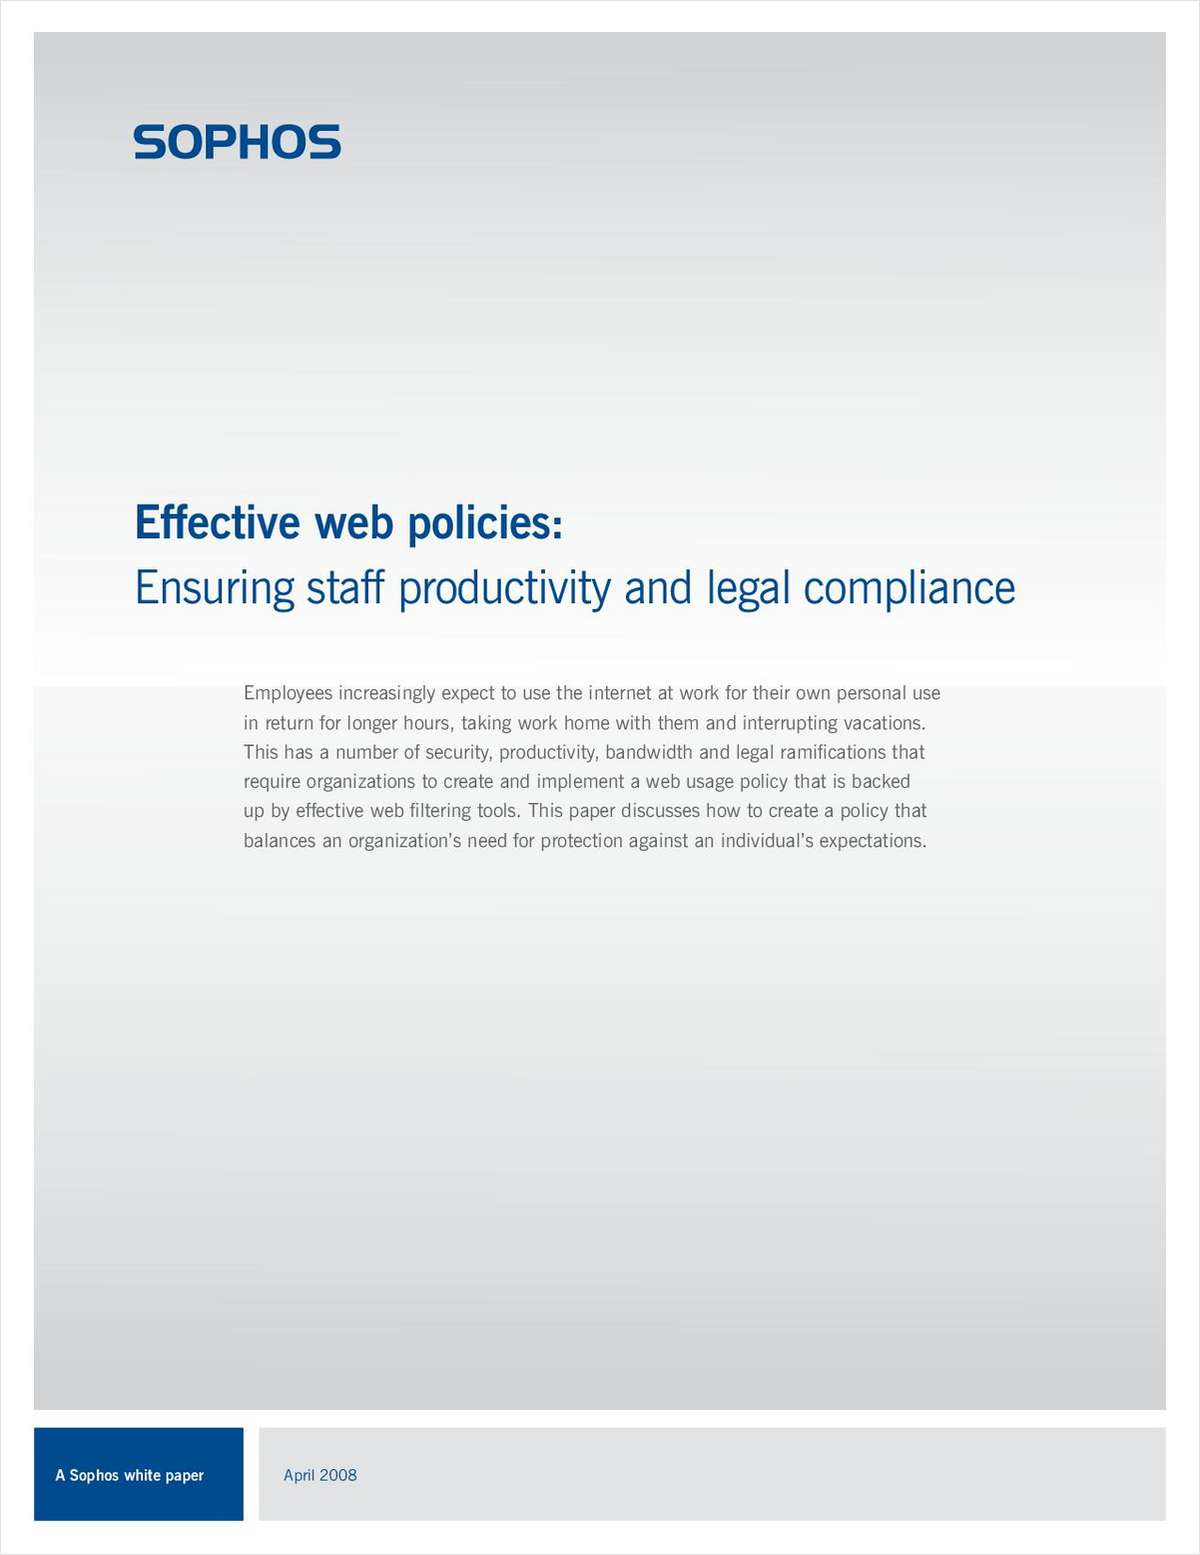 Effective Web Policies: Ensuring Staff Productivity and Legal Compliance